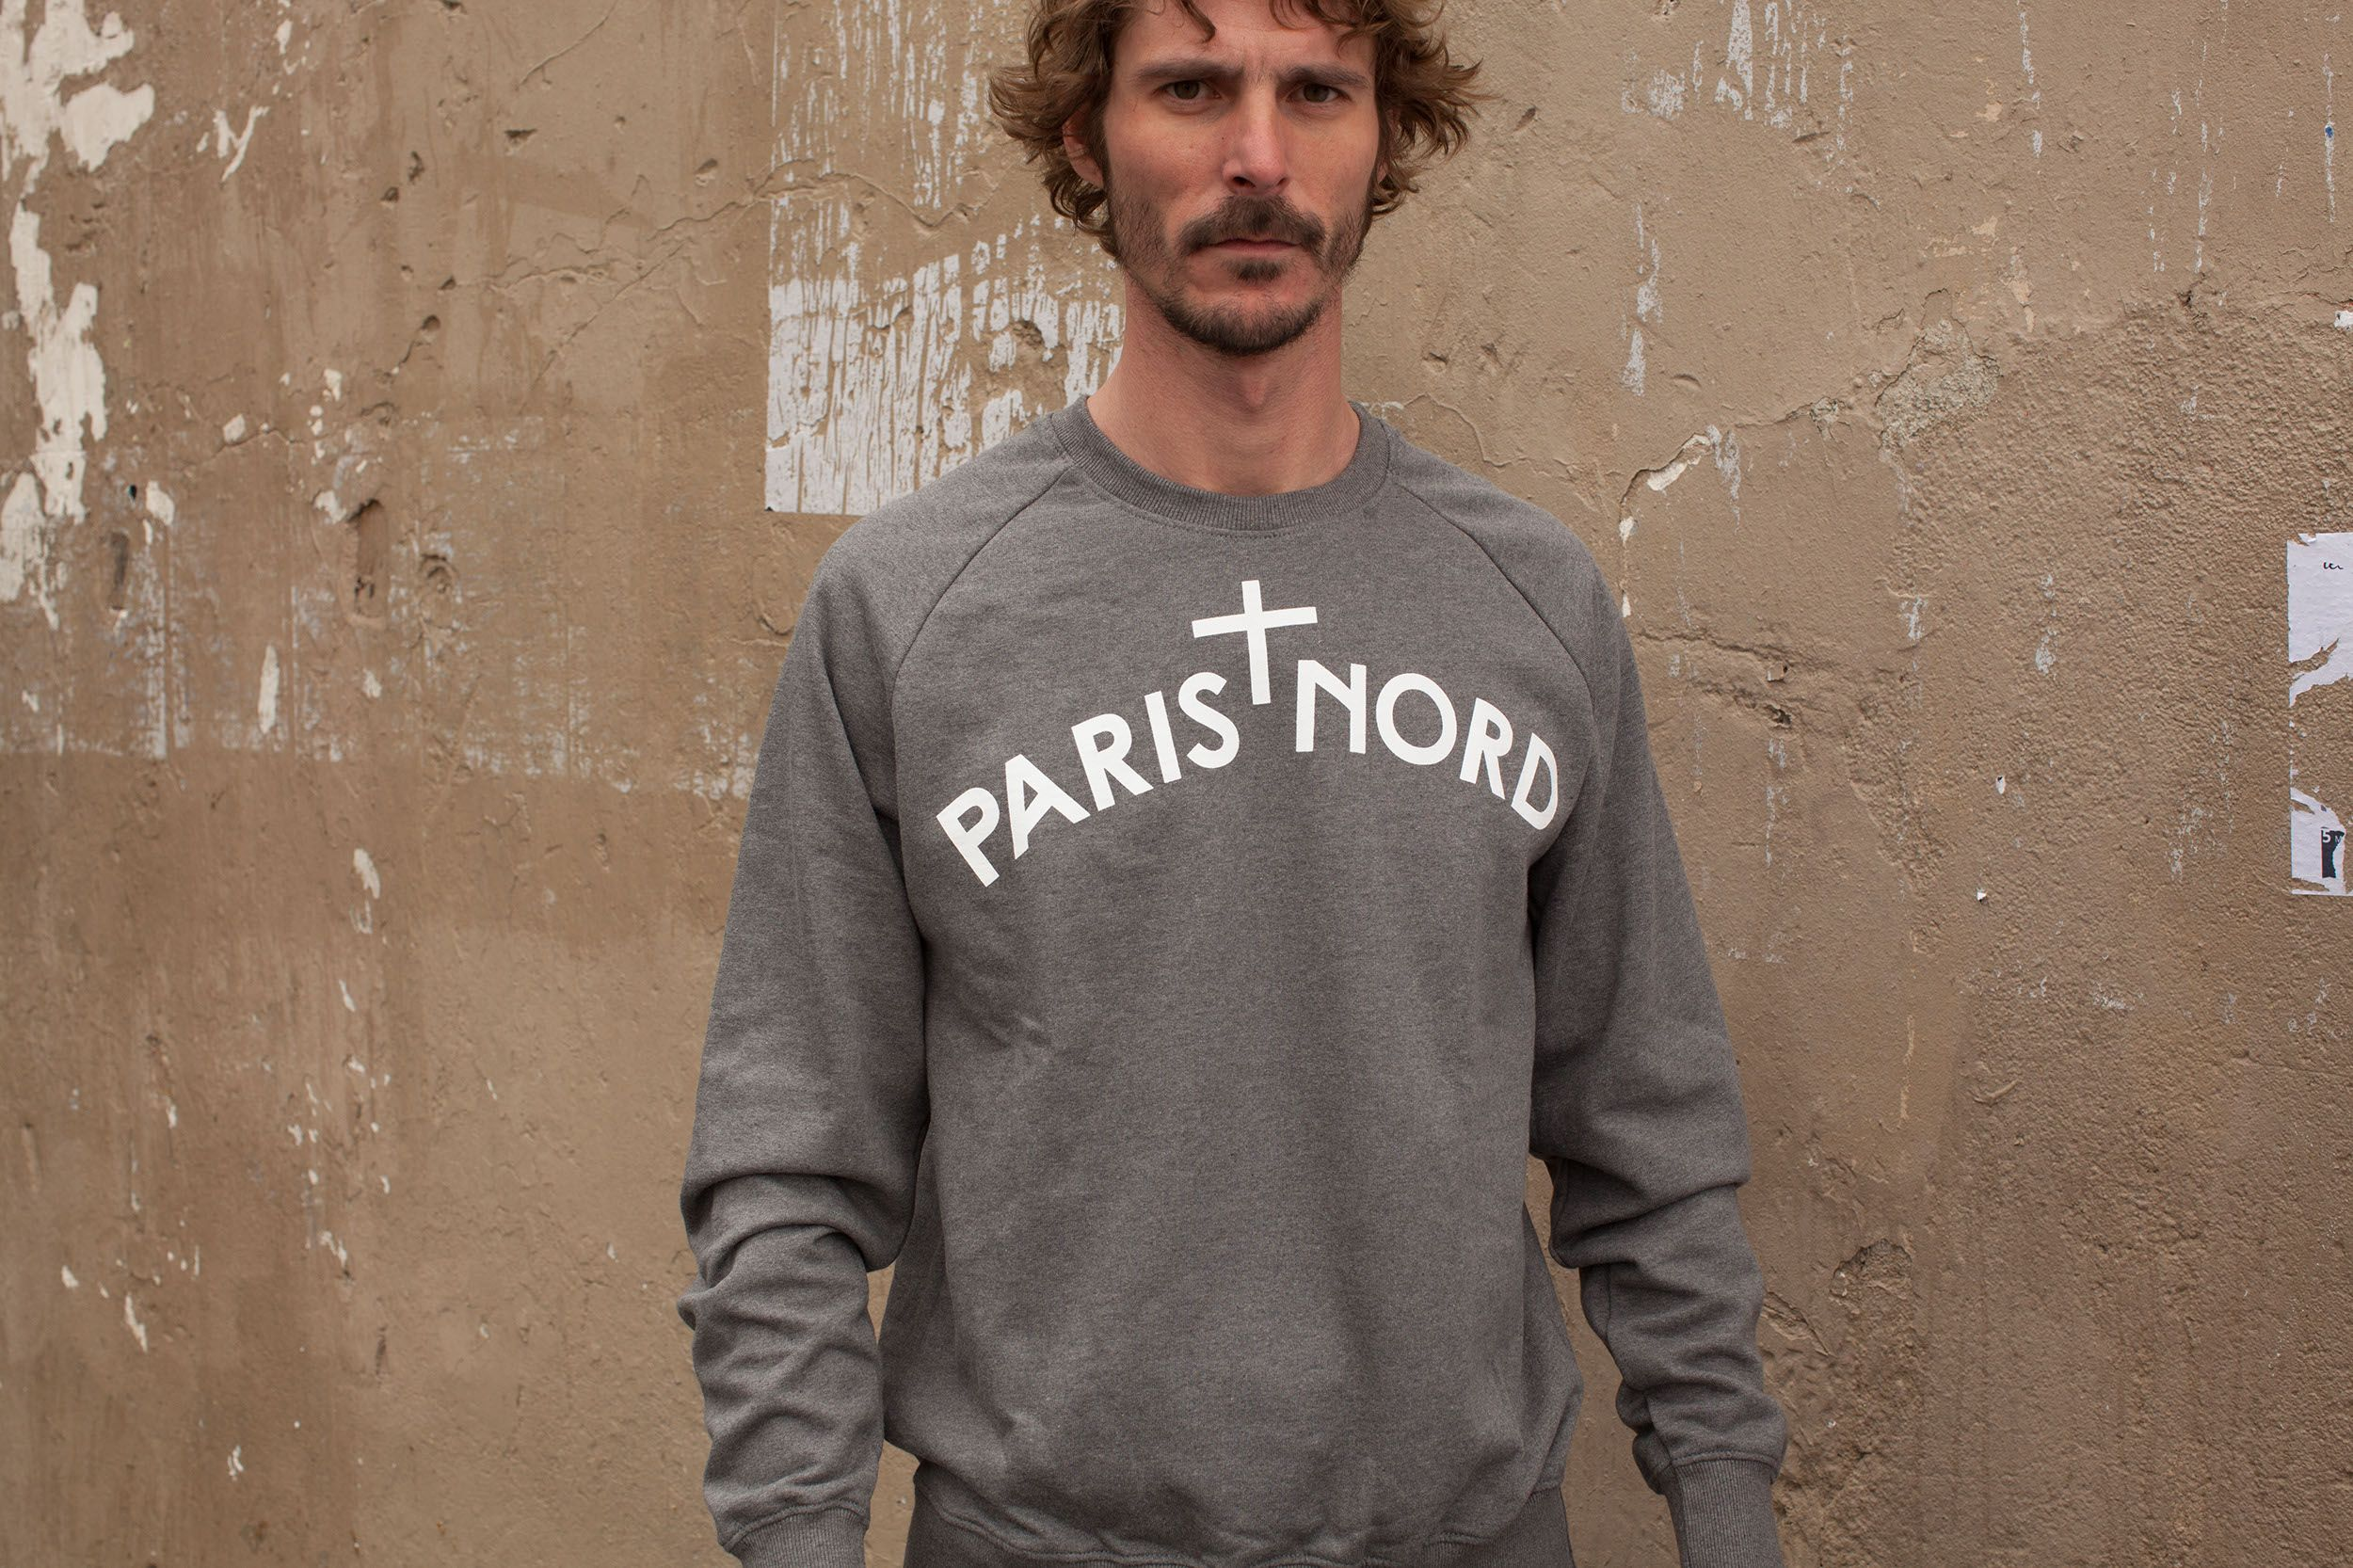 With Paris Grey White LogoNord Sweatshirt NordDark pqSUMVGz